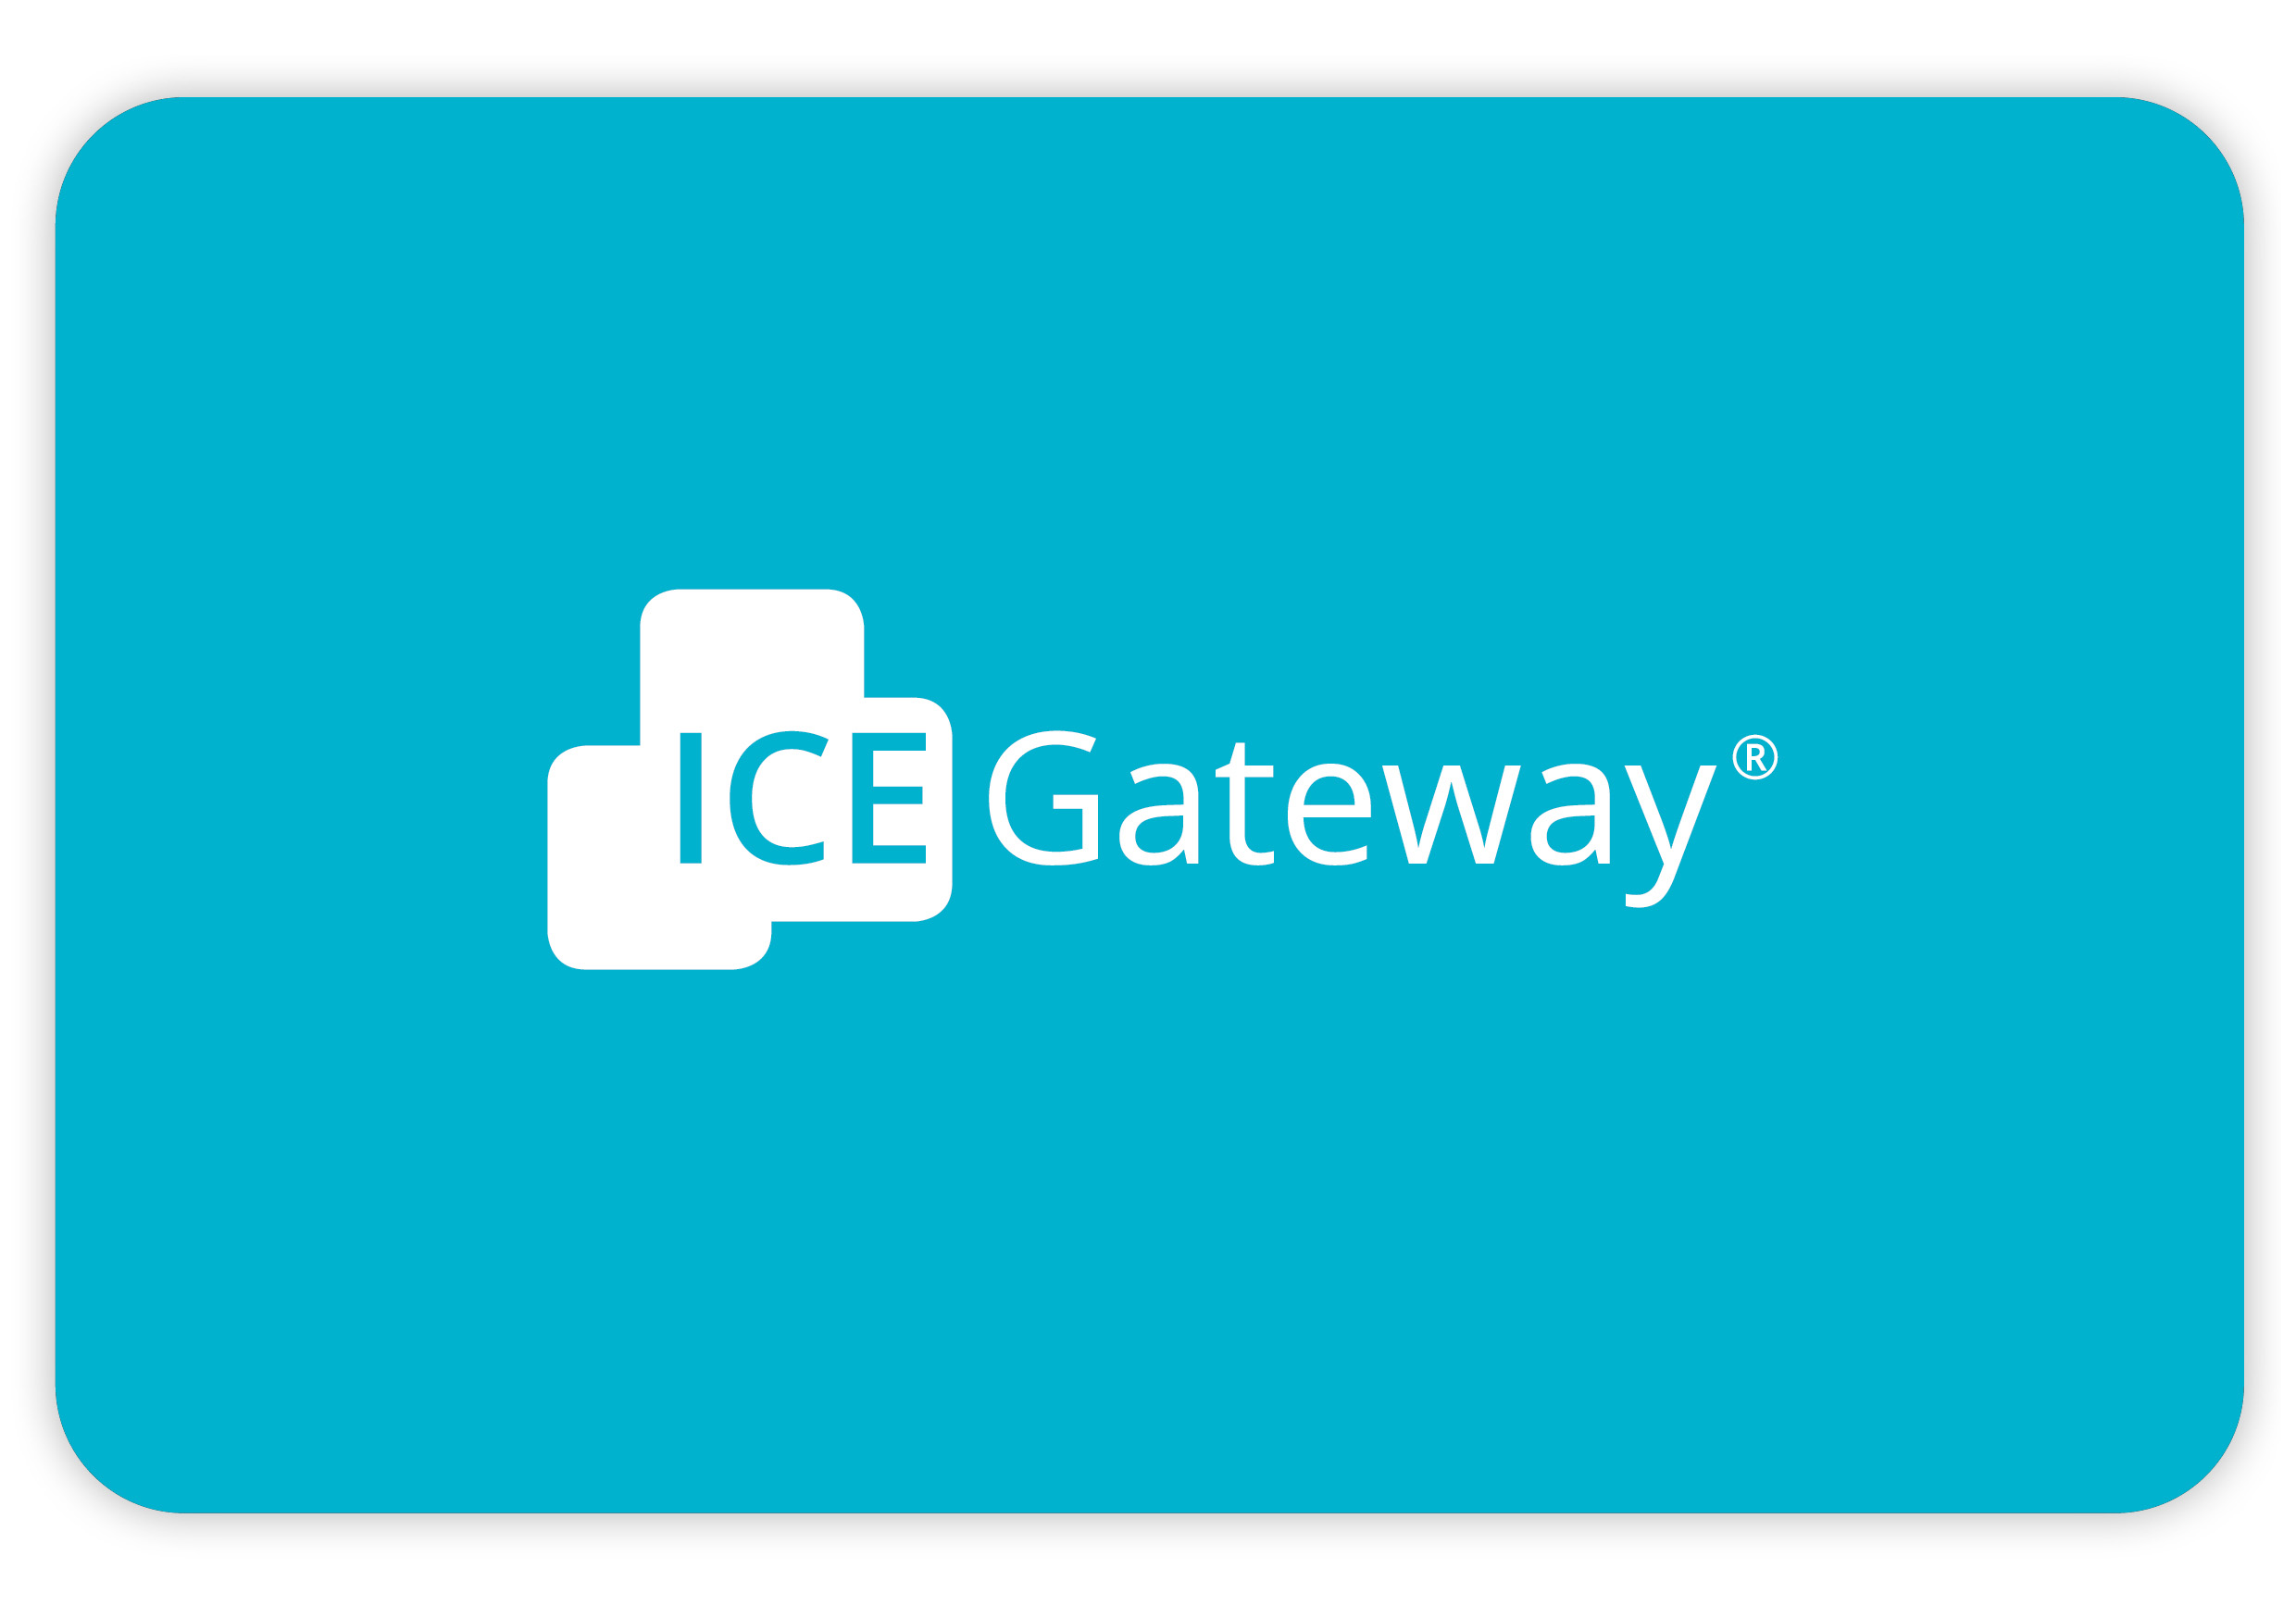 ICE Gateway identity update